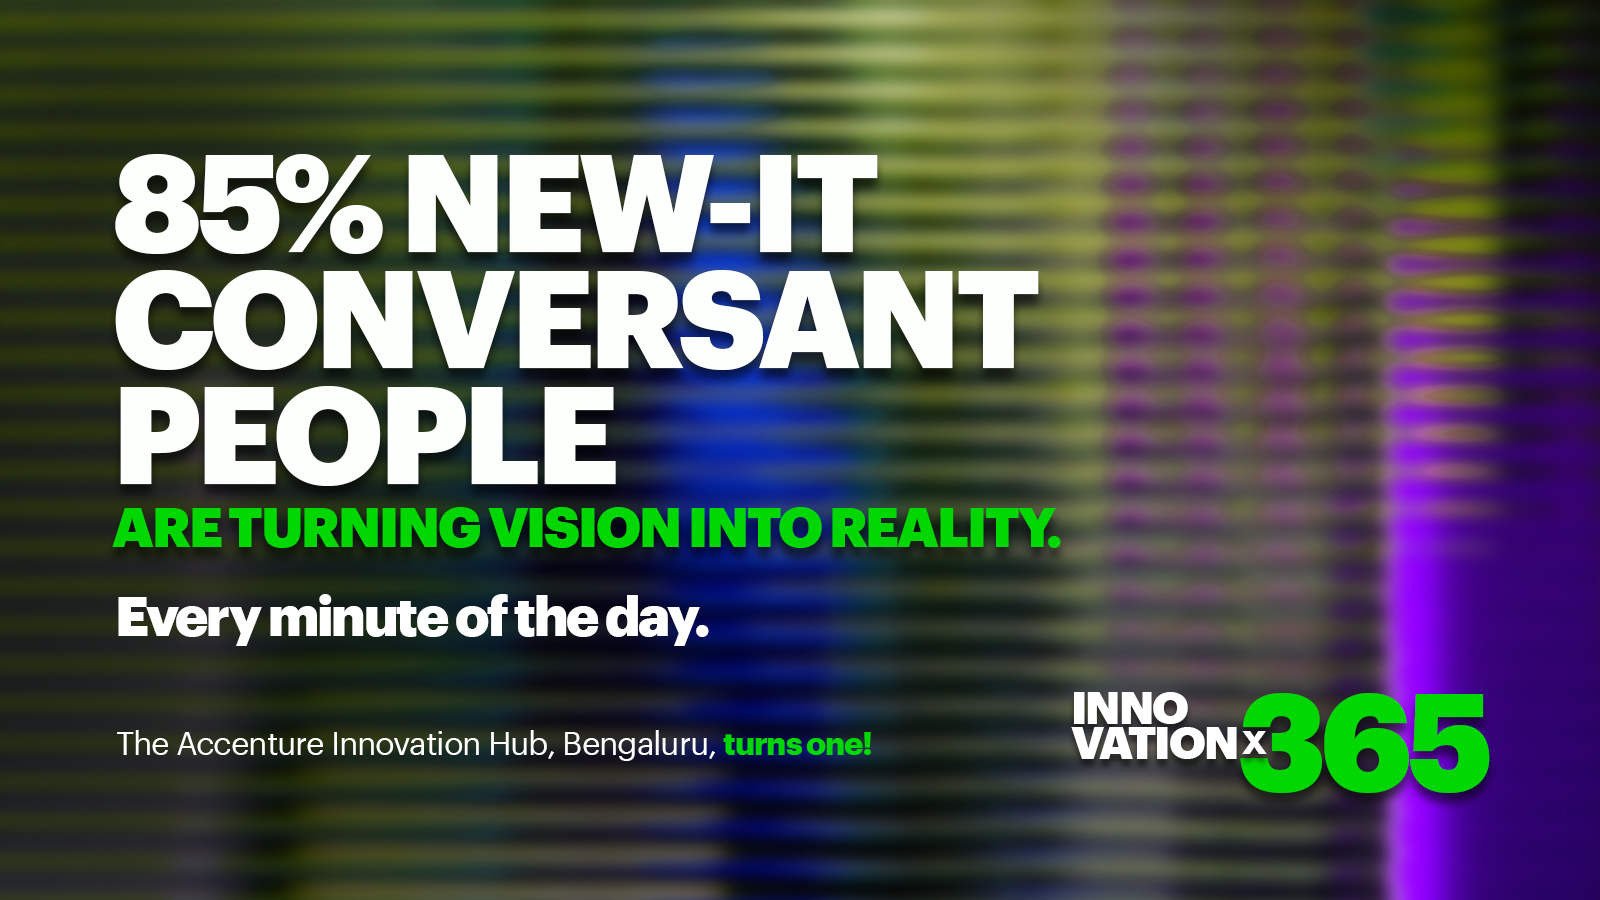 85% New-IT Conversant People are turning vision into reality. Every minute of the day.